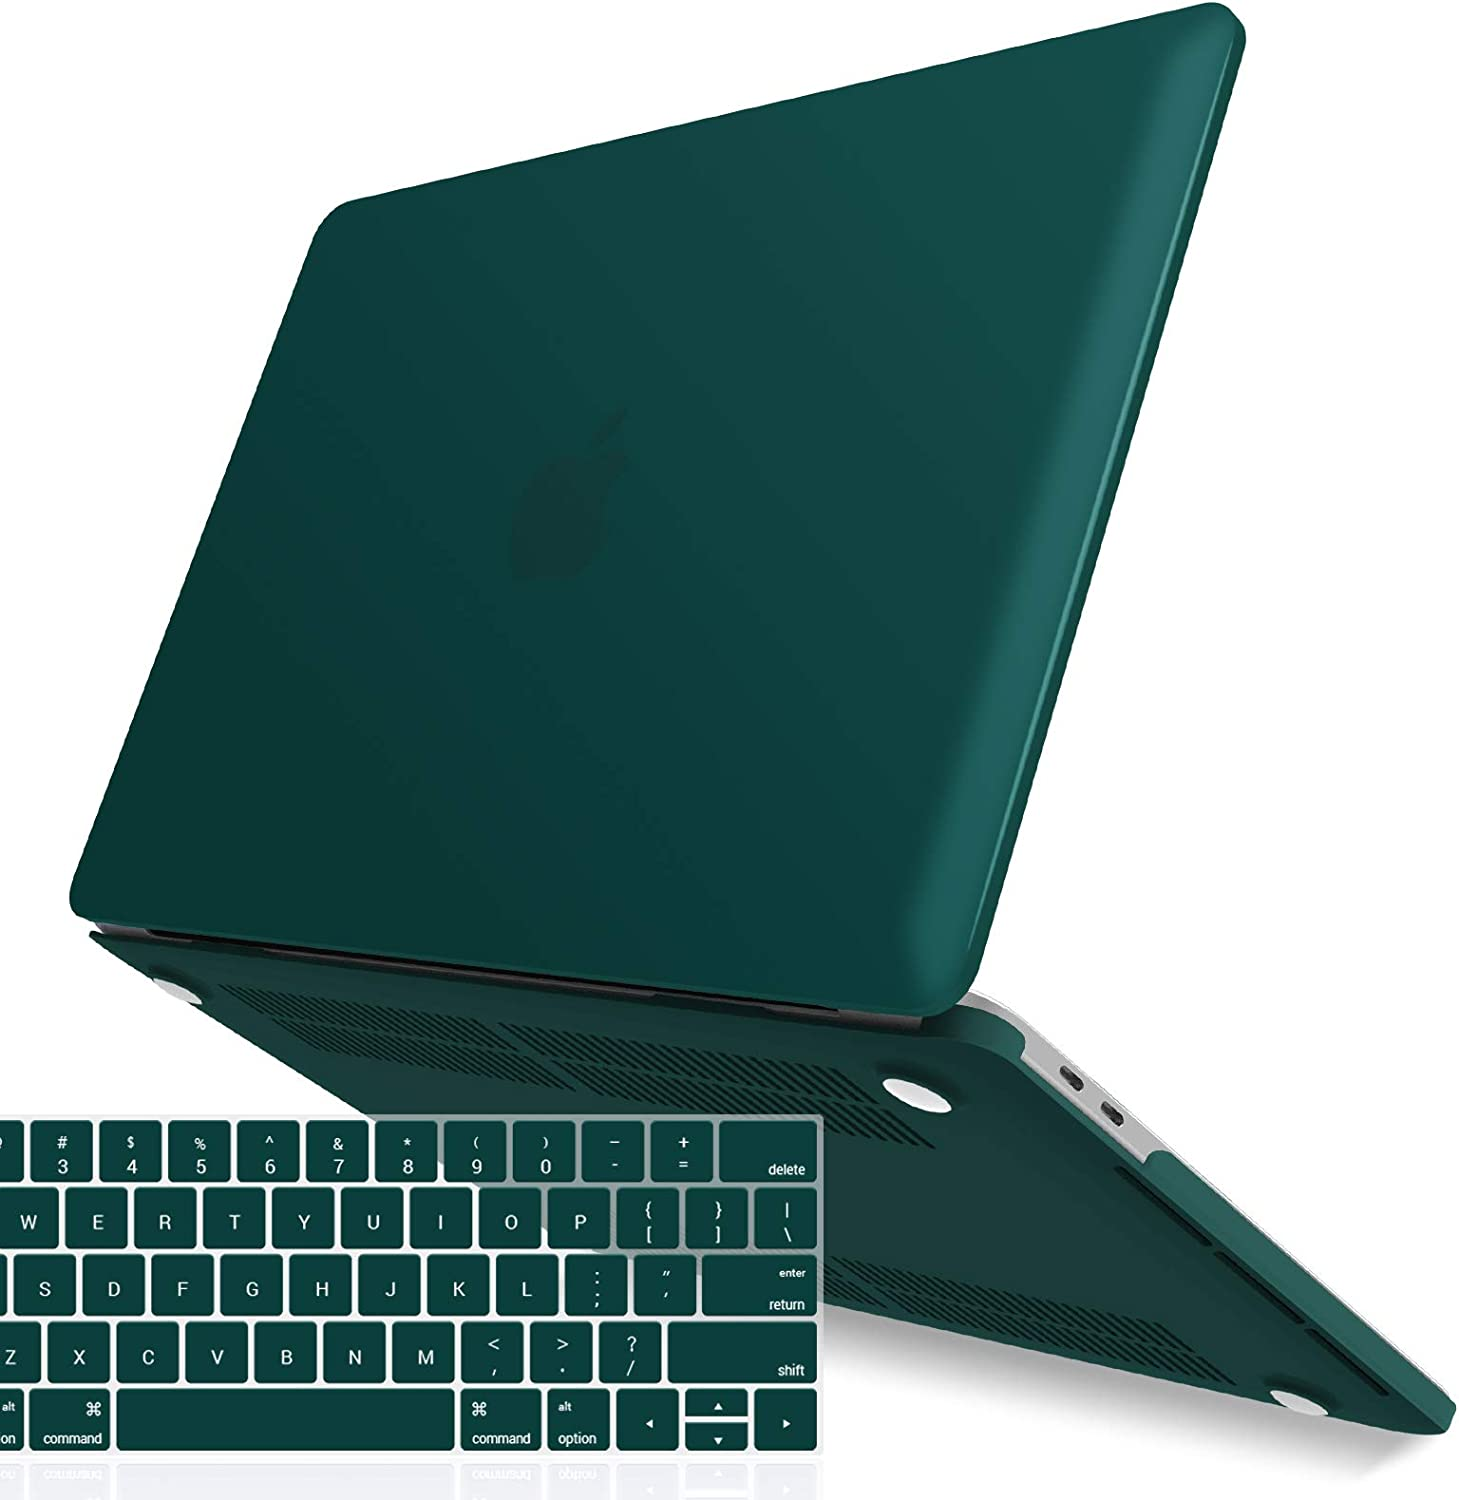 IBENZER MacBook Pro 13 Inch Case 2019 2018 2017 2016 A2159 A1989 A1706 A1708, Hard Shell Case with Keyboard Cover for Apple Mac Pro 13 Touch Bar, Quezhal Green, T13QUGN+1